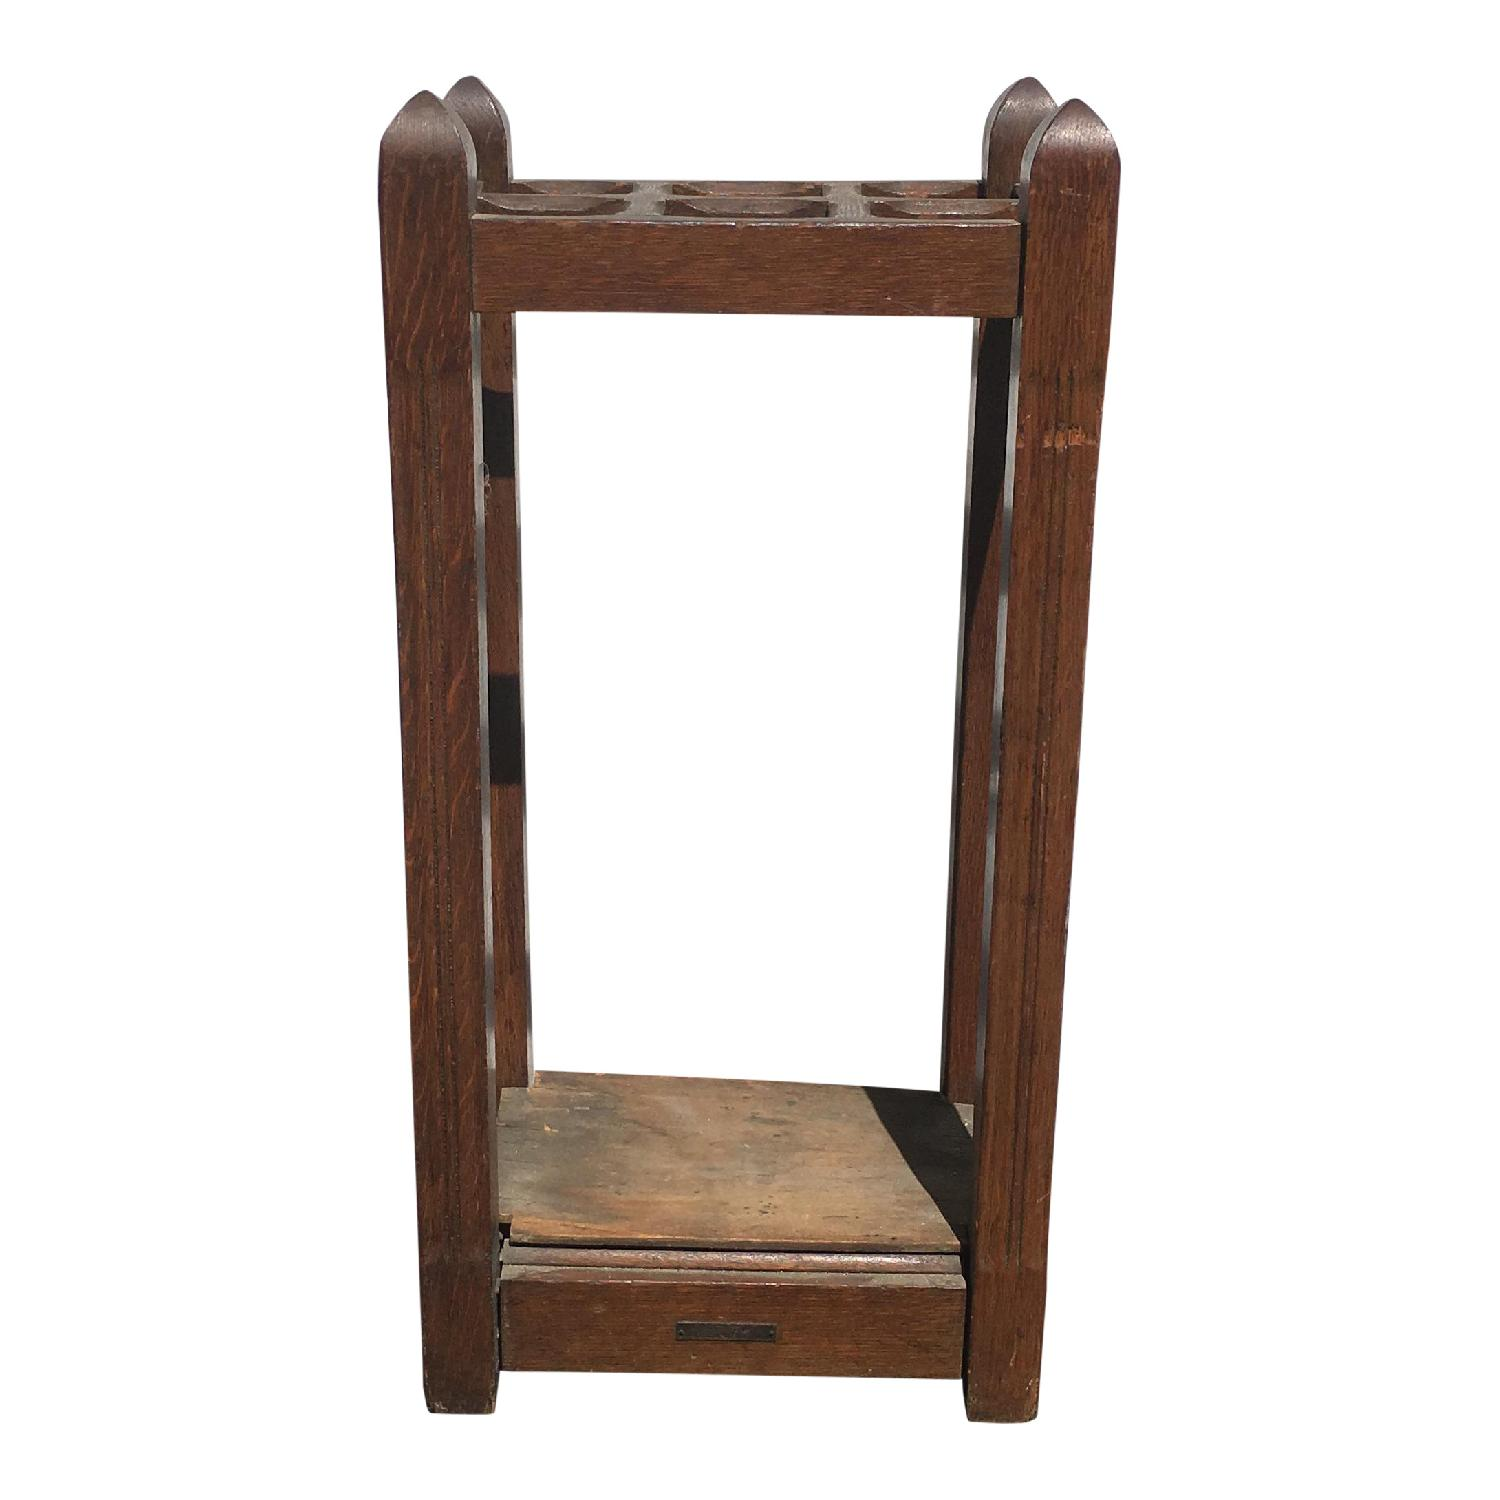 Original Antique Mission Oak Umbrella Stand - image-1